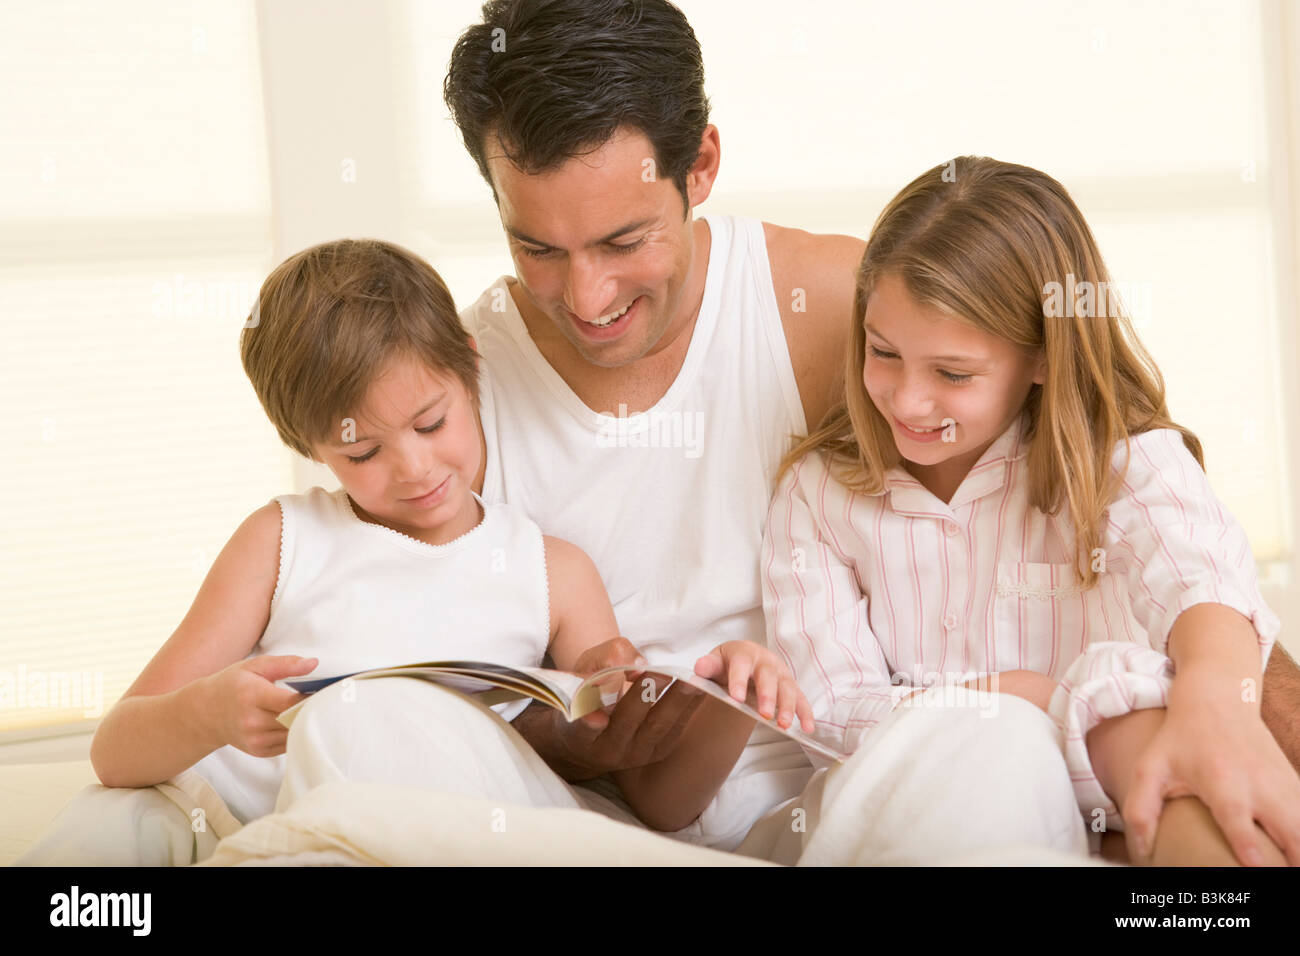 Man with two young children sitting in bed reading a book and smiling - Stock Image